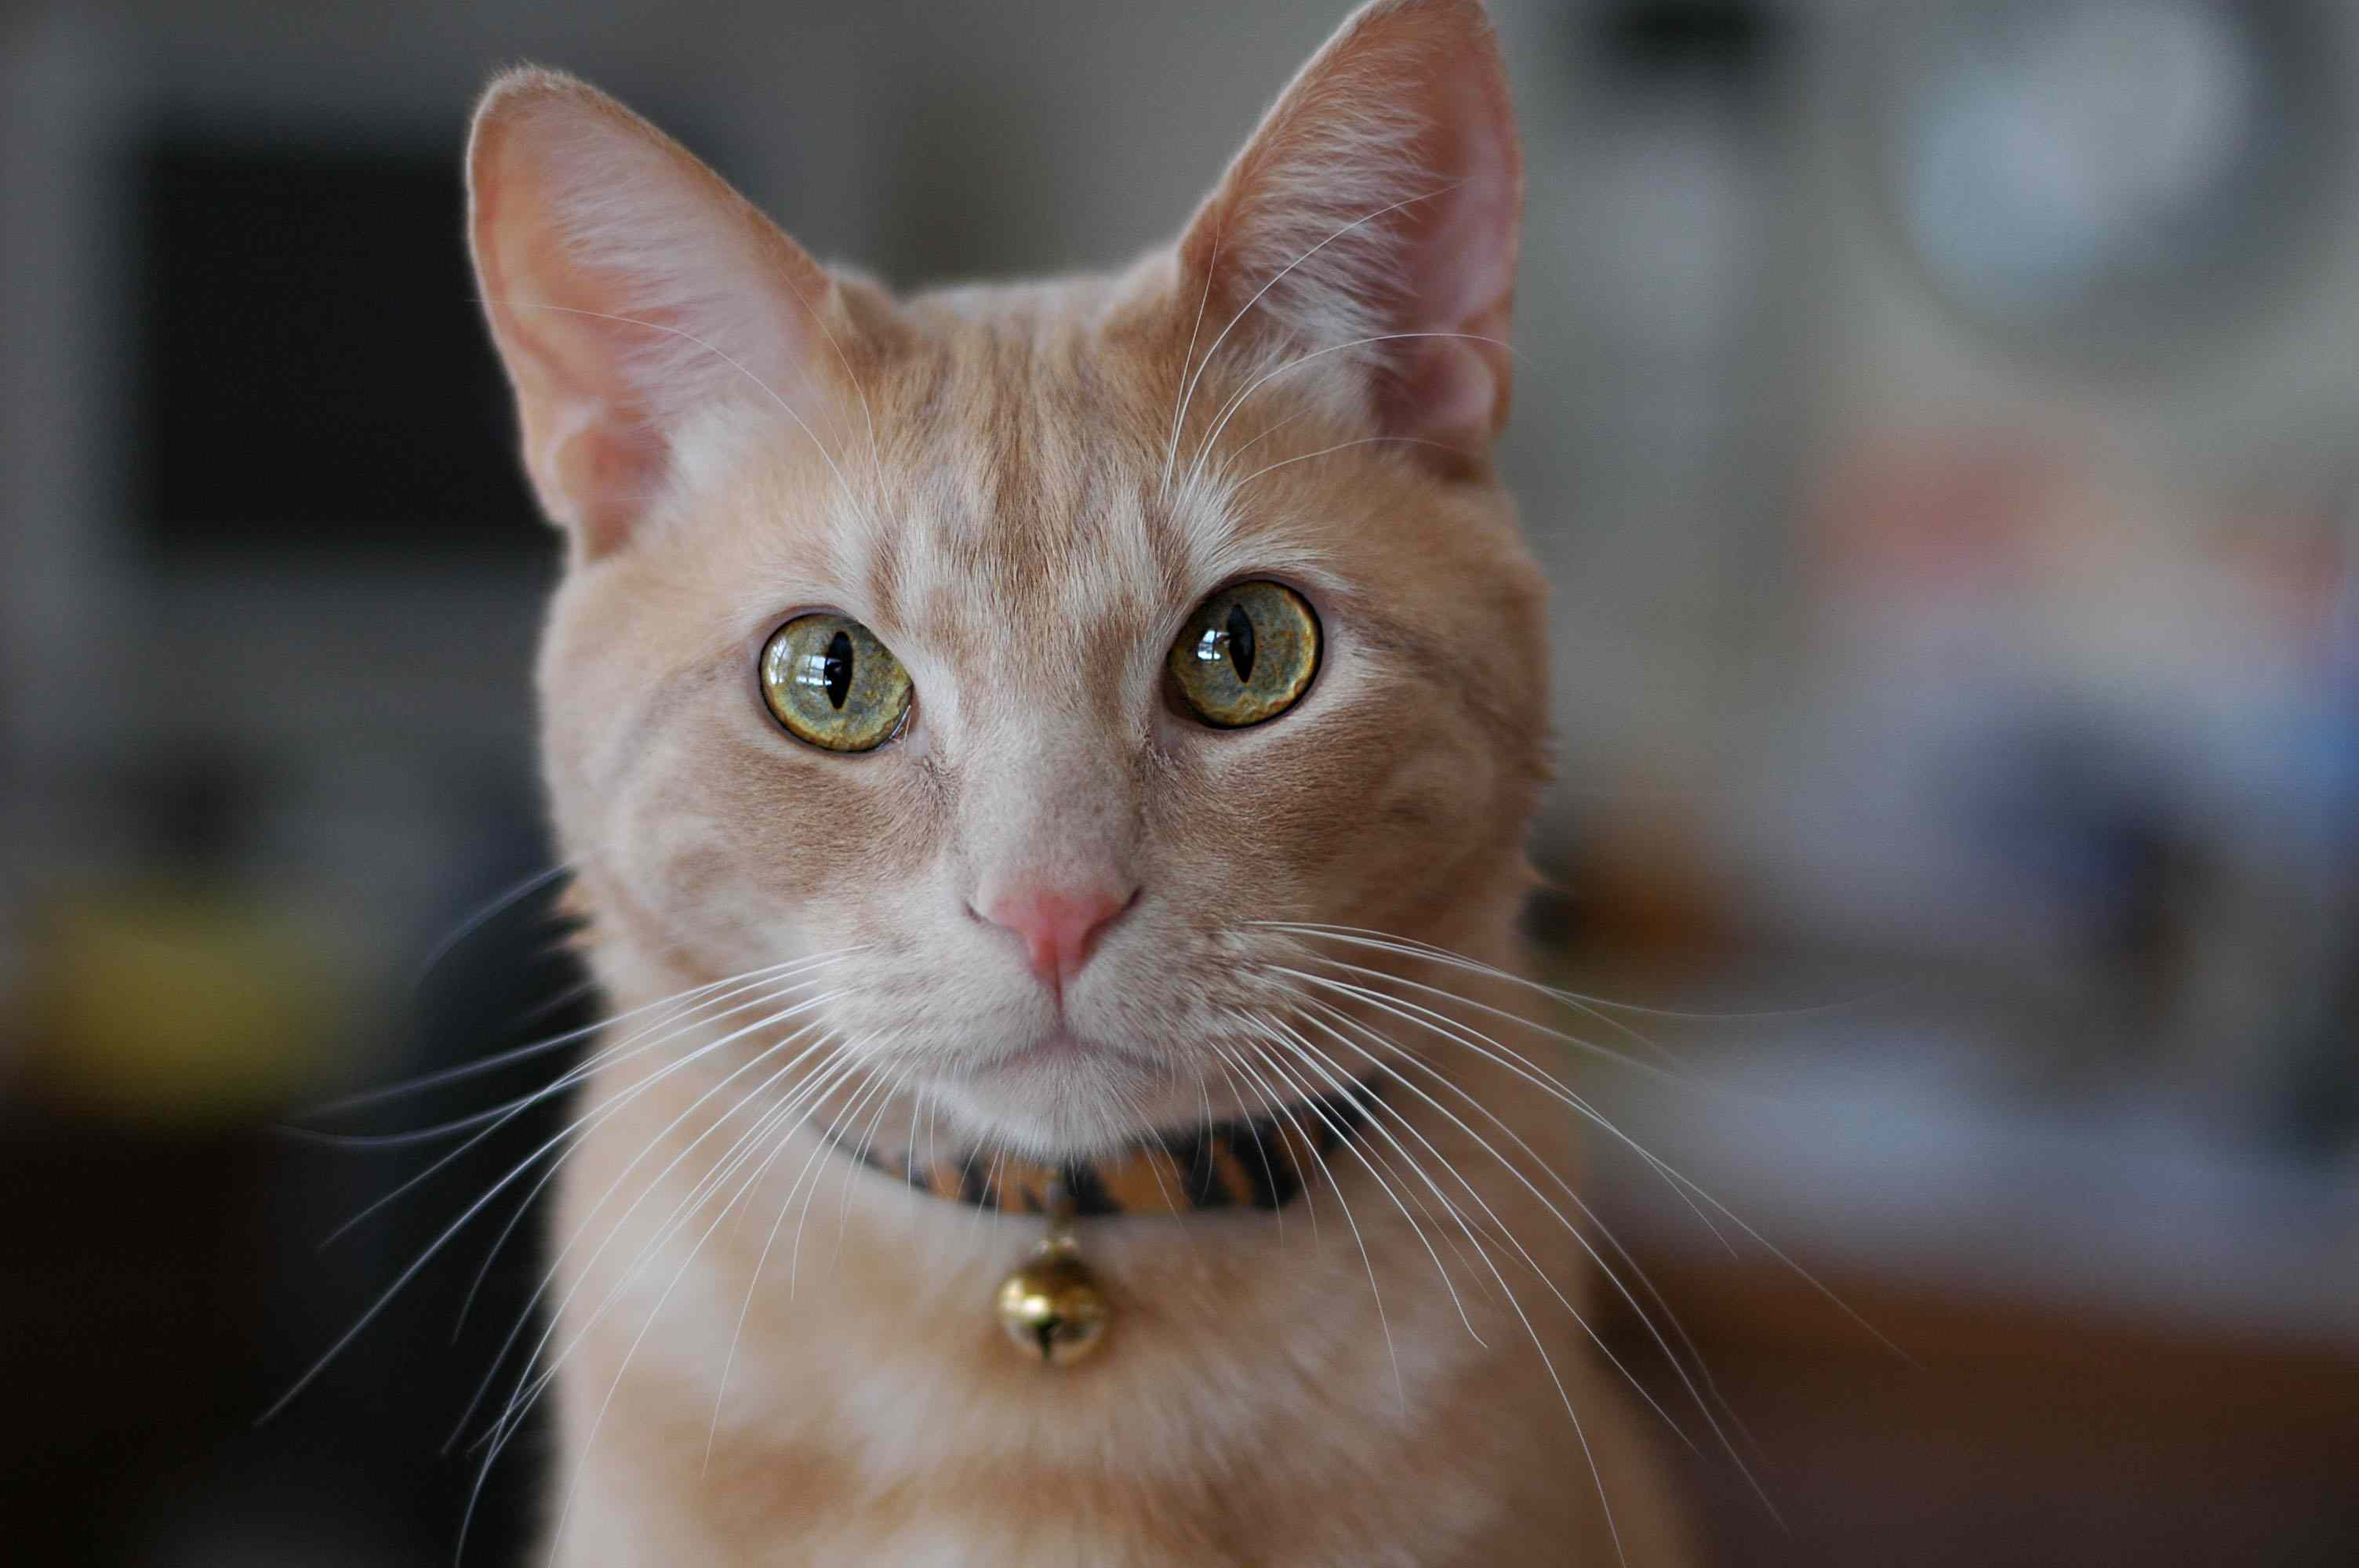 Cat with bell on collar.